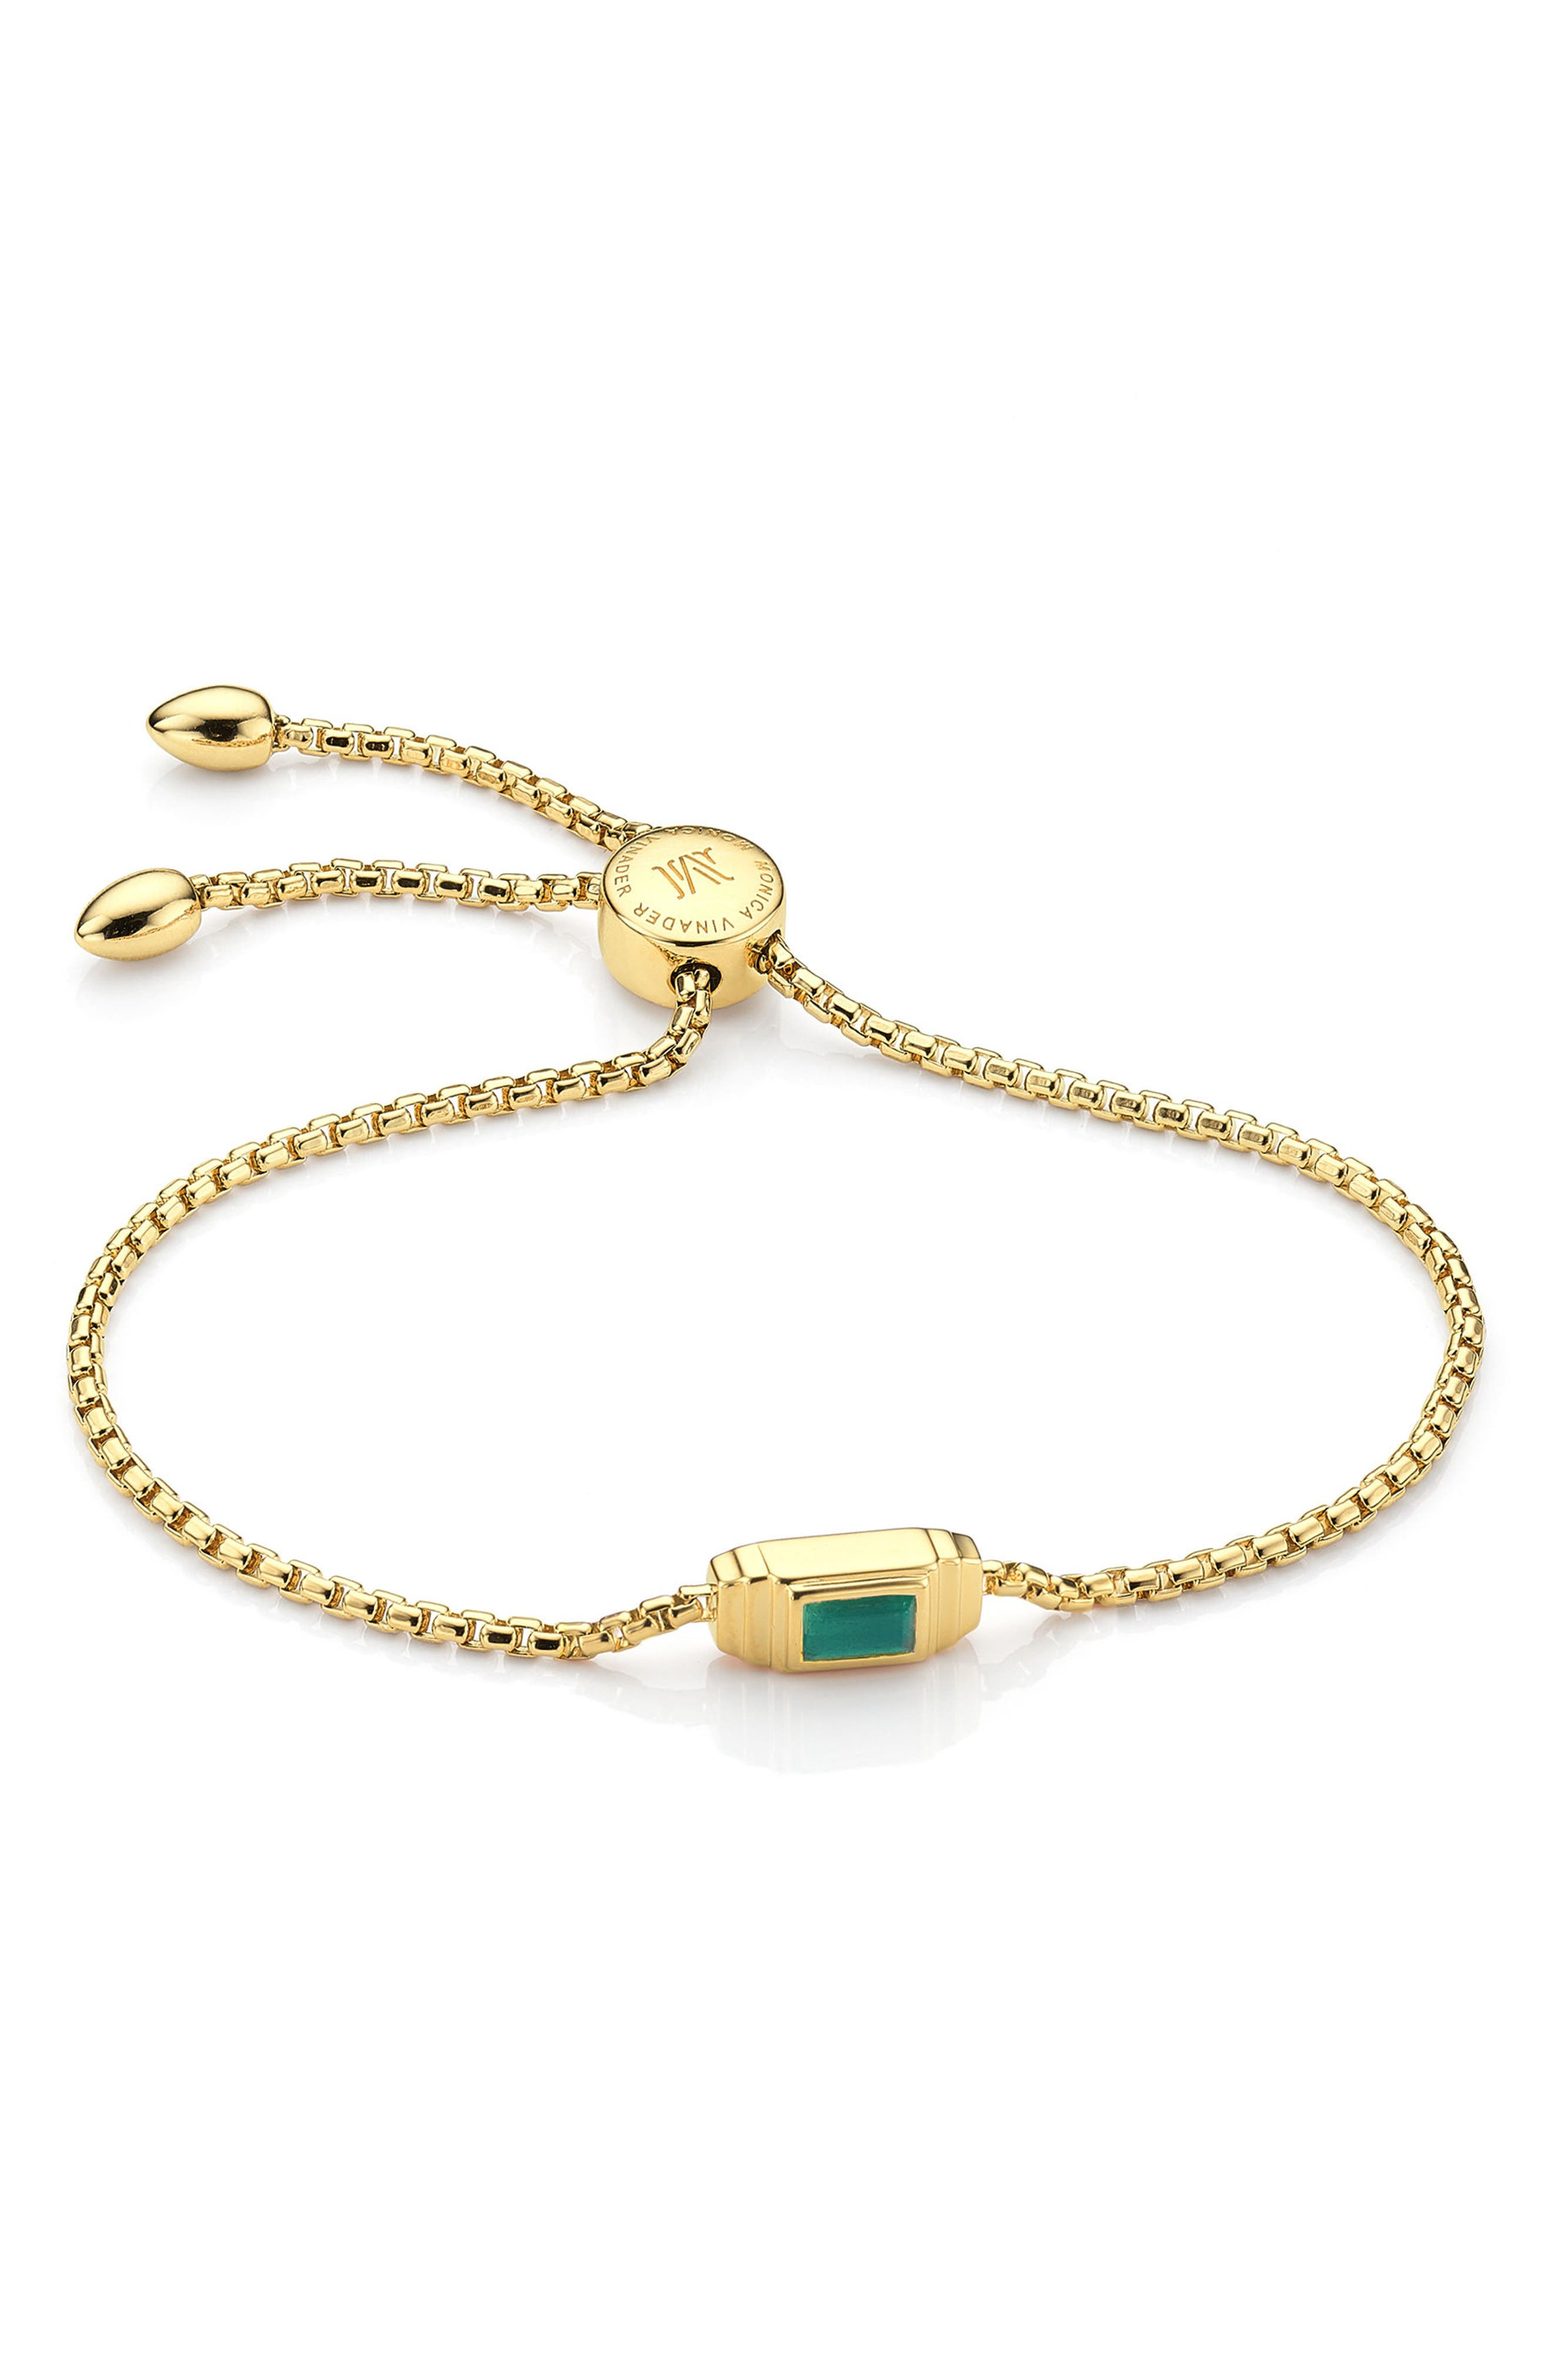 MONICA VINADER Baja Deco Friendship Bracelet